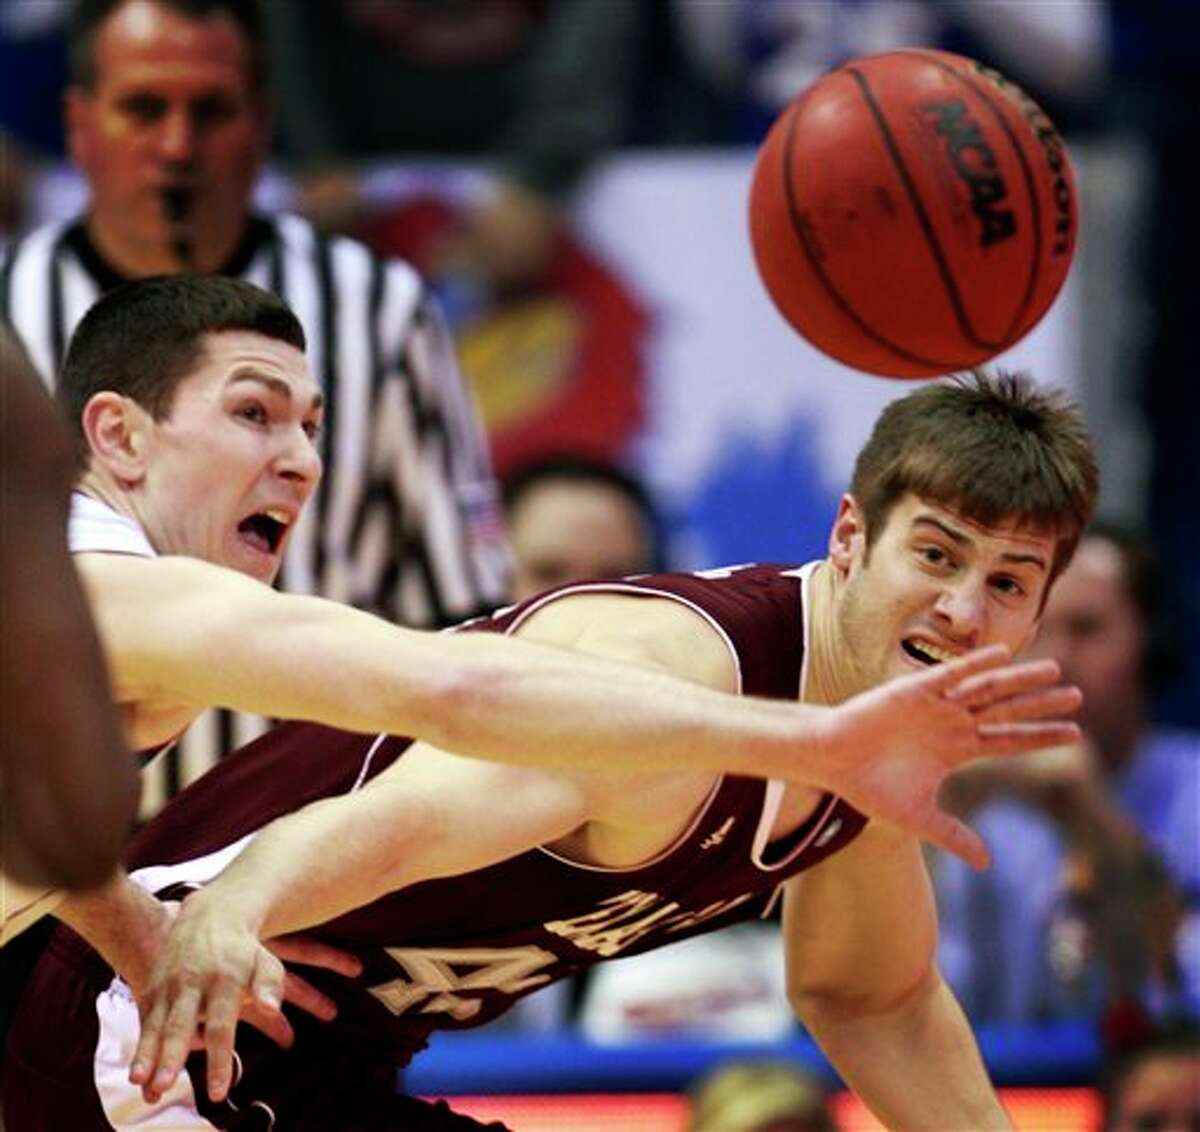 Kansas guard Tyrel Reed (left) attempts to keep the ball away from Texas A&M forward Nathan Walkup. ORLIN WAGNER/ASSOCIATED PRESS